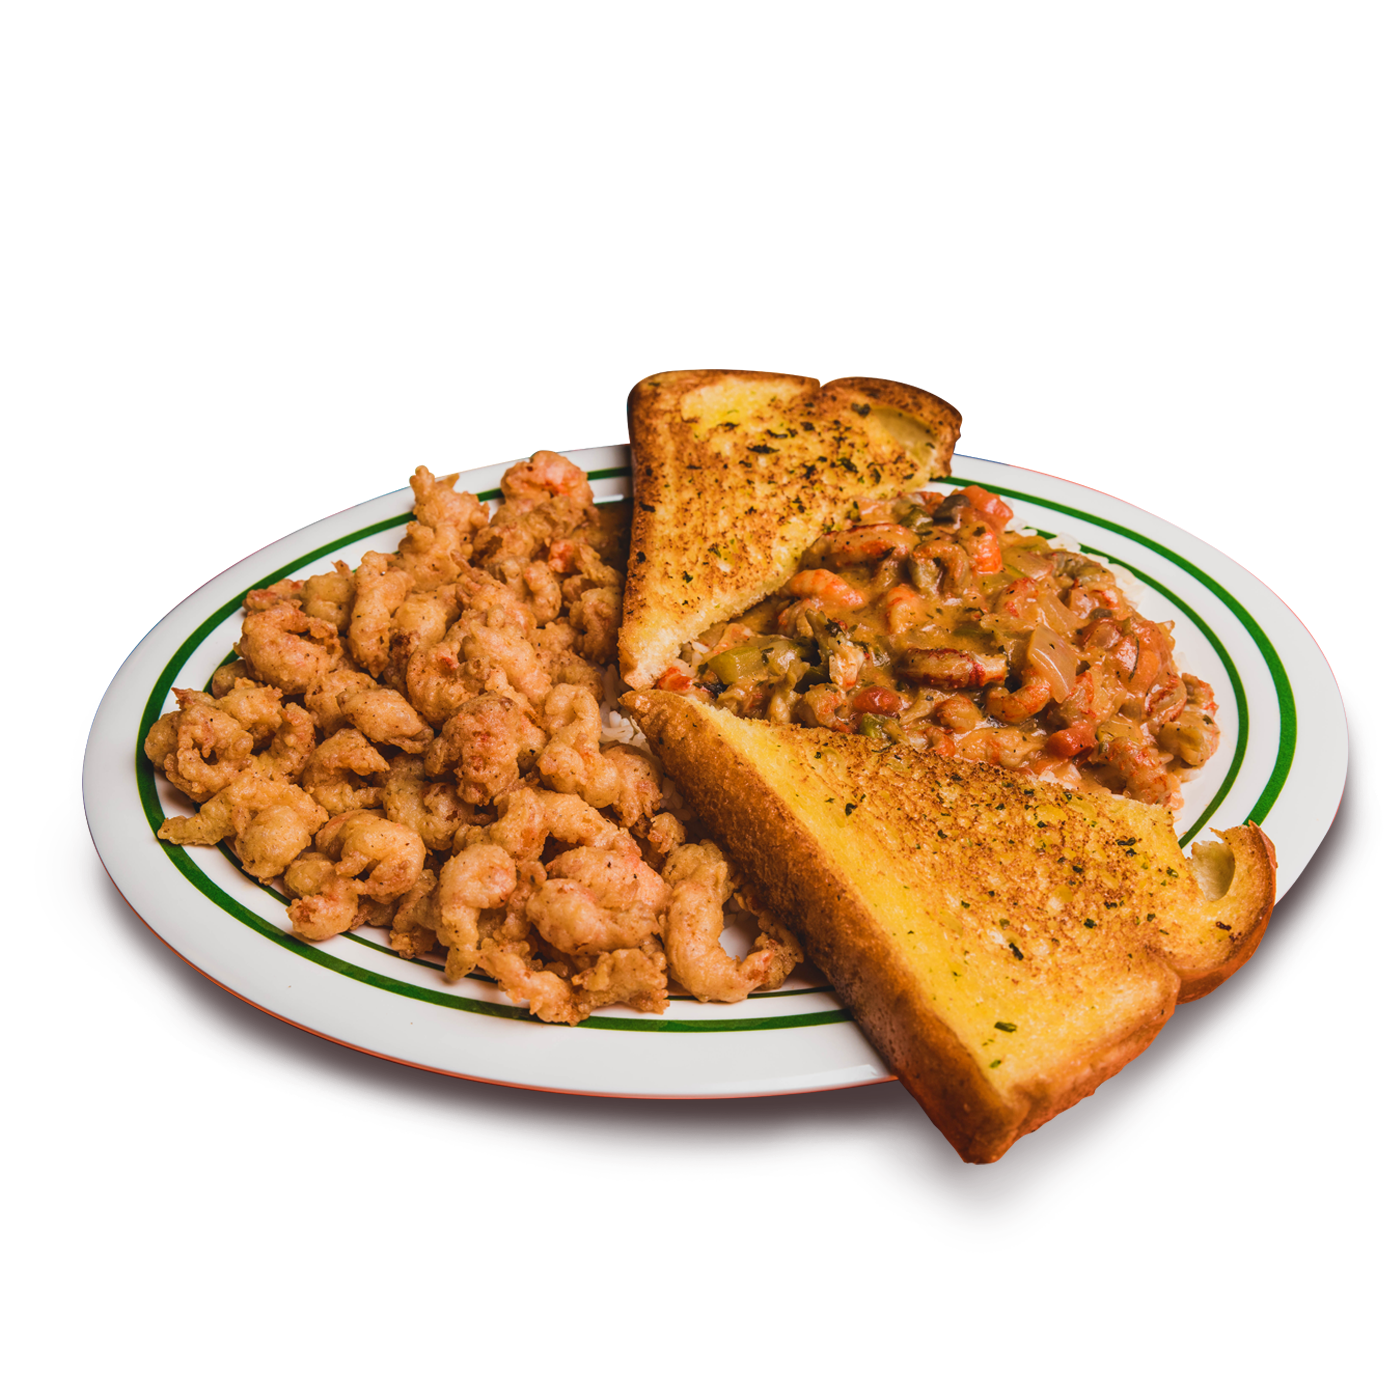 Roy's Catfish Hut | Check Out Our Delicious Seafood | Kinder, Louisiana